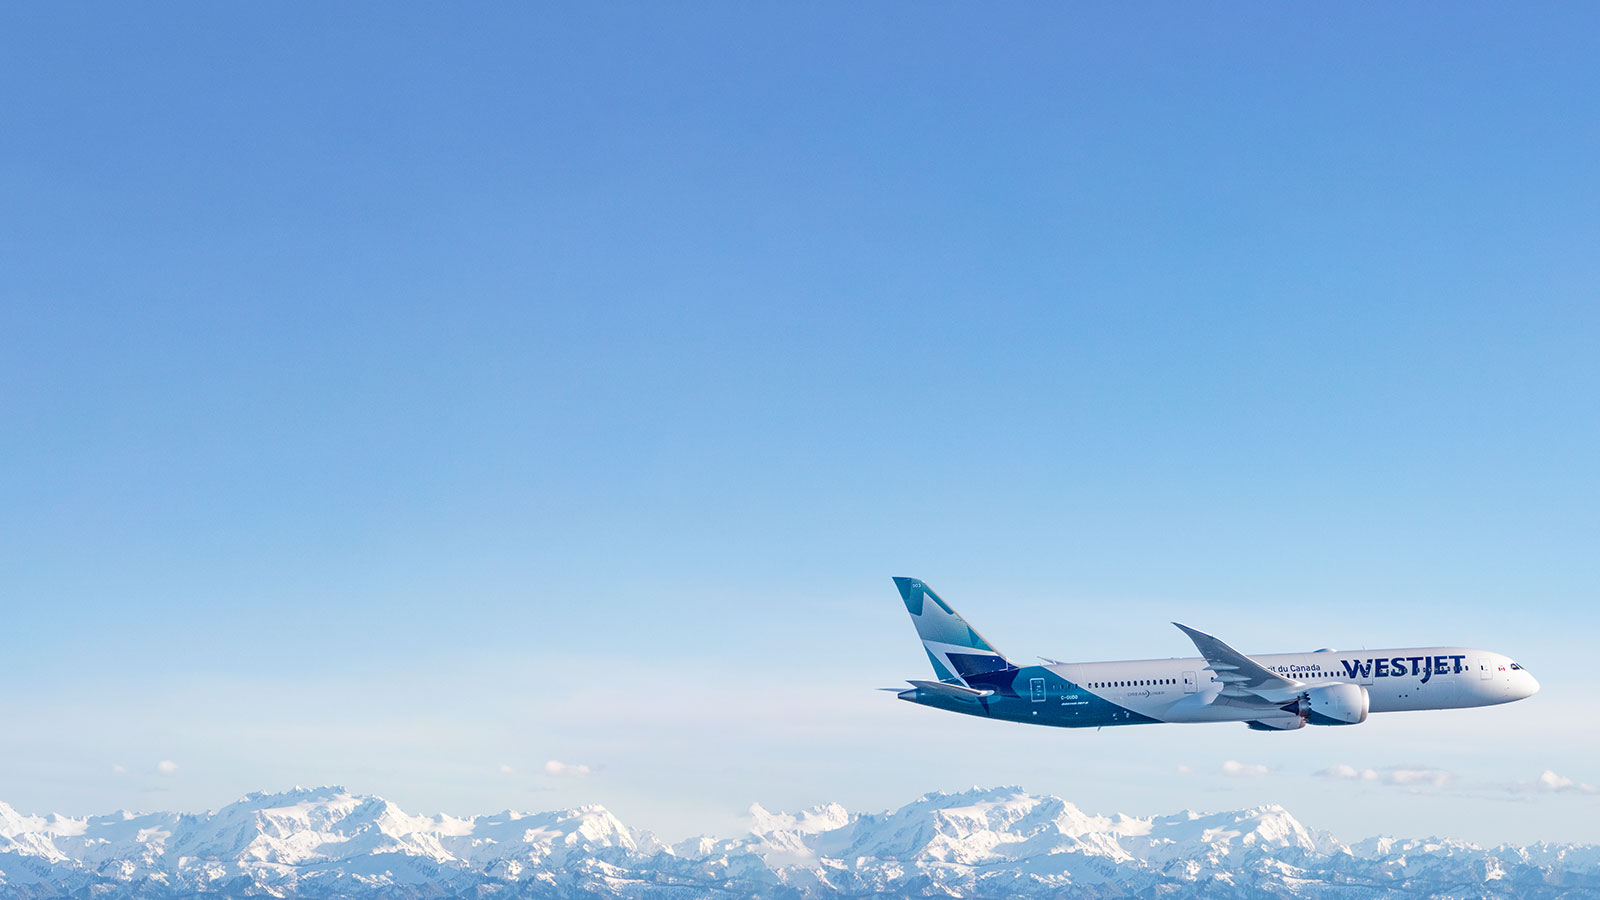 WestJet aircraft flying over the mountains